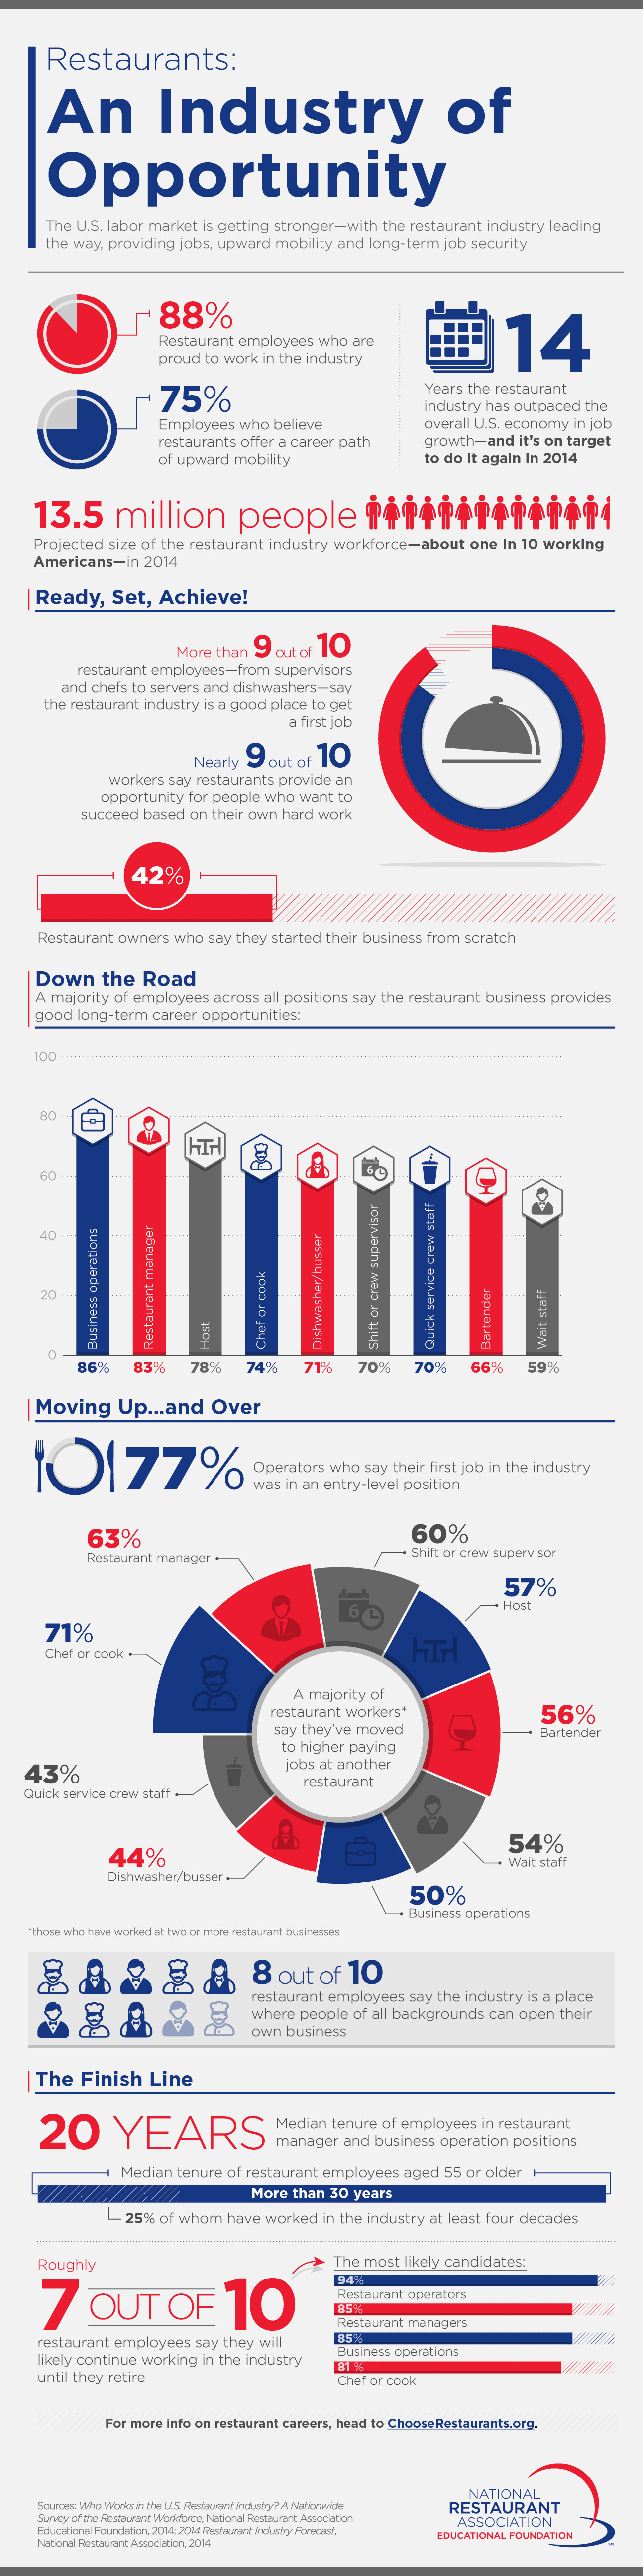 Franchising, Restaurants, Franchise, National Restaurant Association, infographic, information